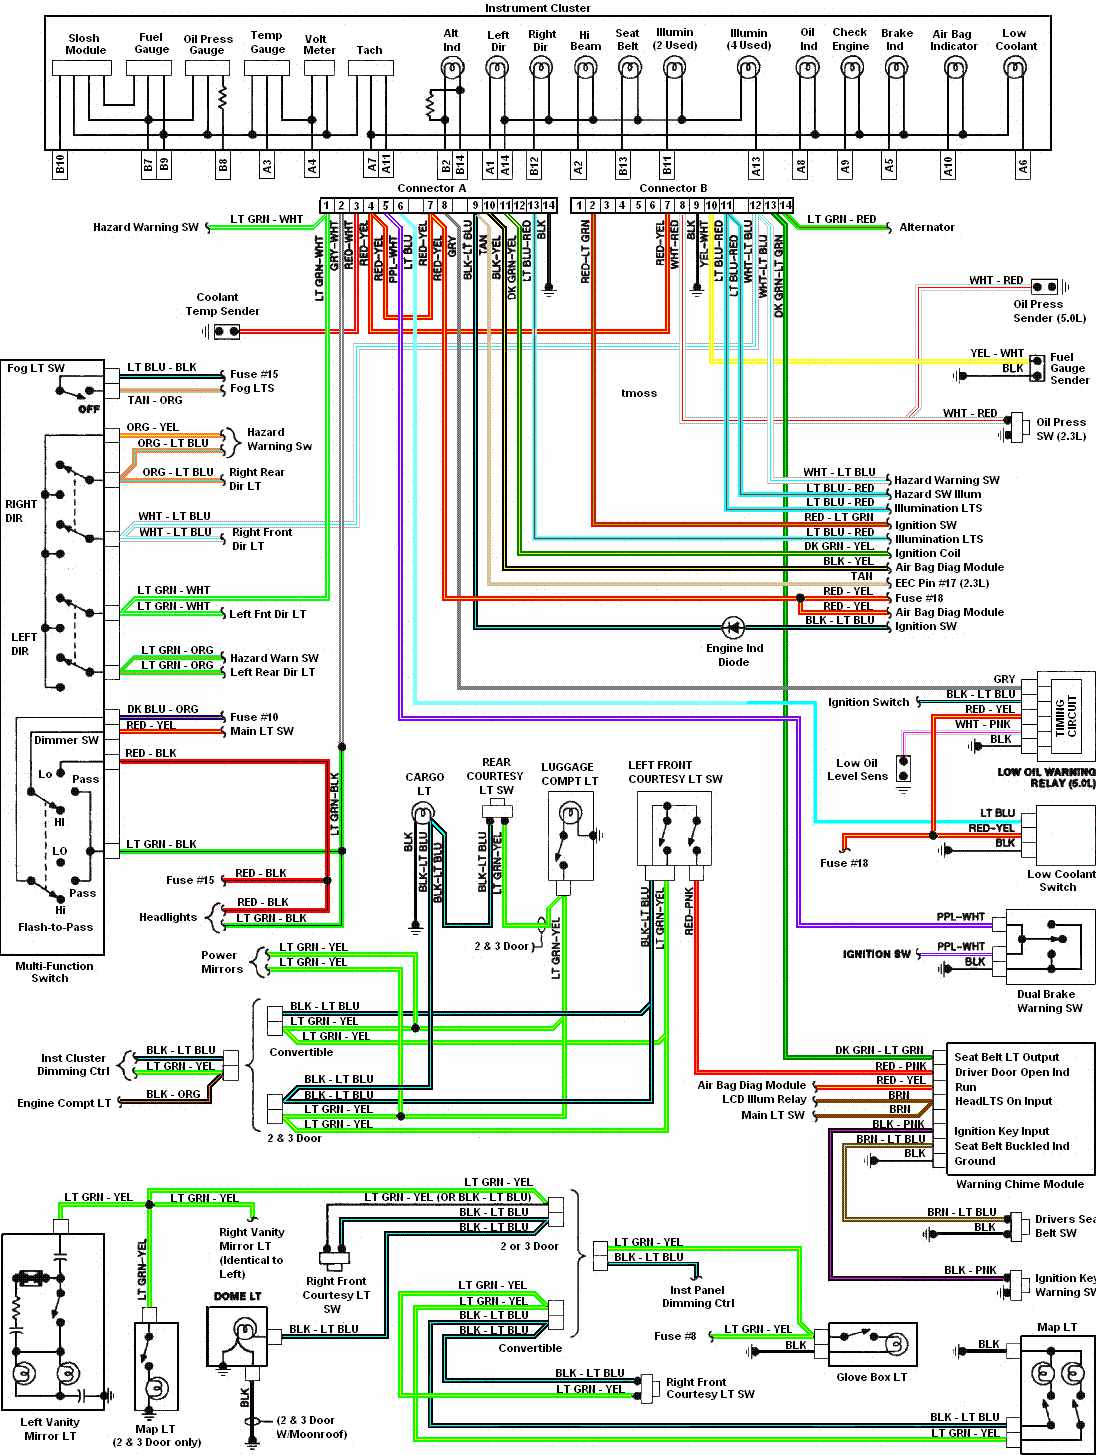 Yamaha F150 Wiring Diagram also Scooby Doo Themed Birthday Party furthermore Tech further Beyonce Gold Glastonbury Fashion Style together with Wiring. on chevy headlight dimmer signal switch pin diagram